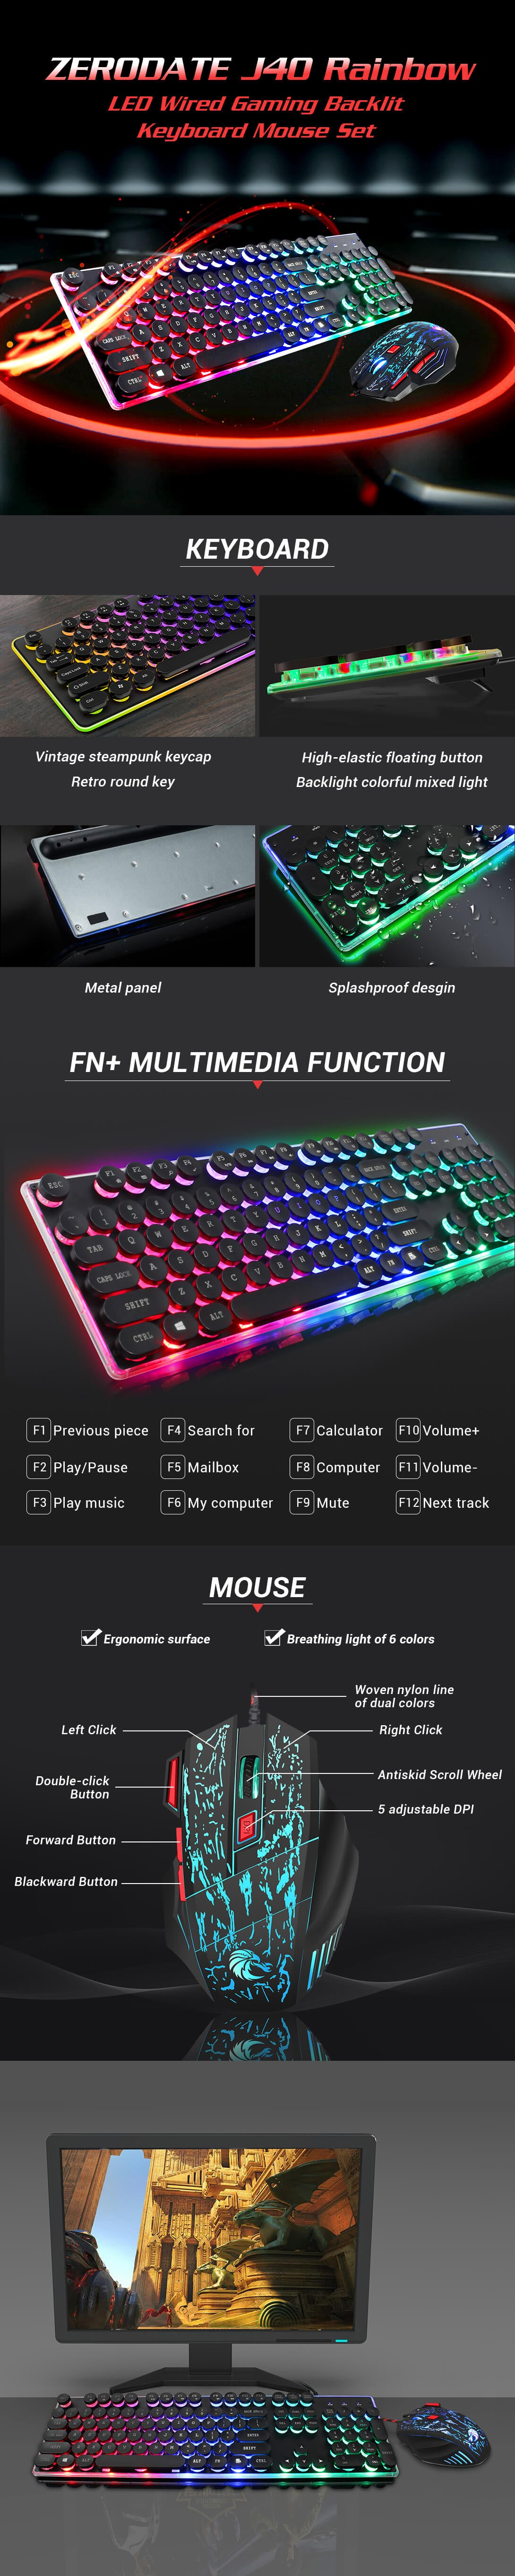 J40 Rainbow LED Wired Gaming Backlit Keyboard Mouse Set